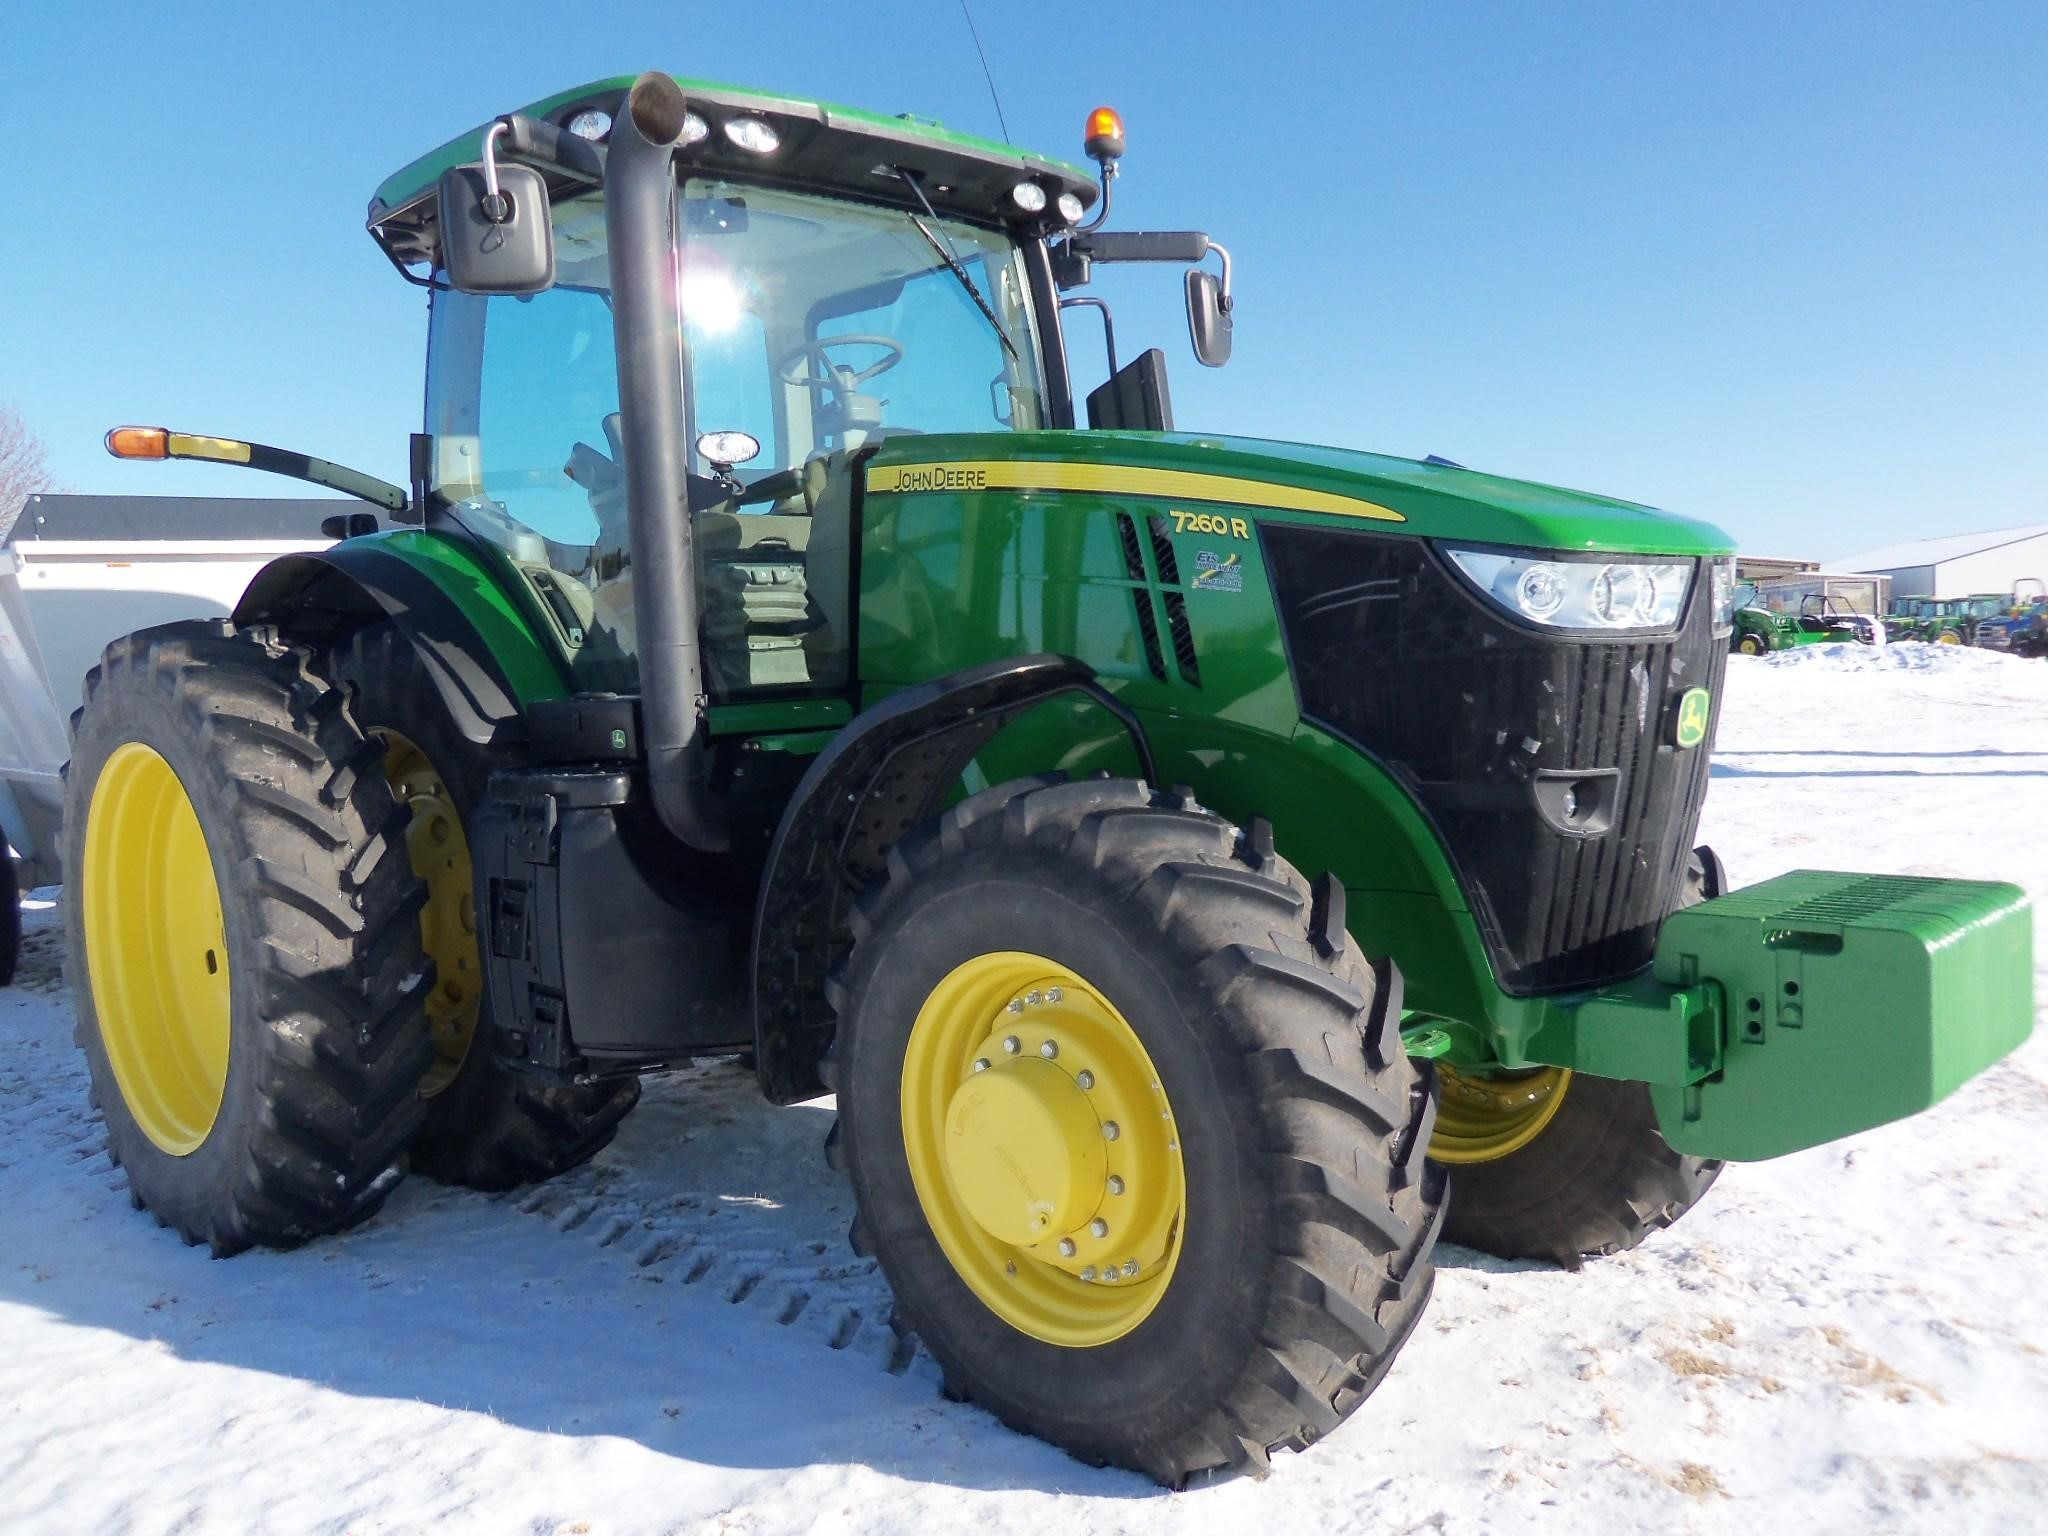 Wisconsin Ag Connection - John Deere 7260R Tractors for sale